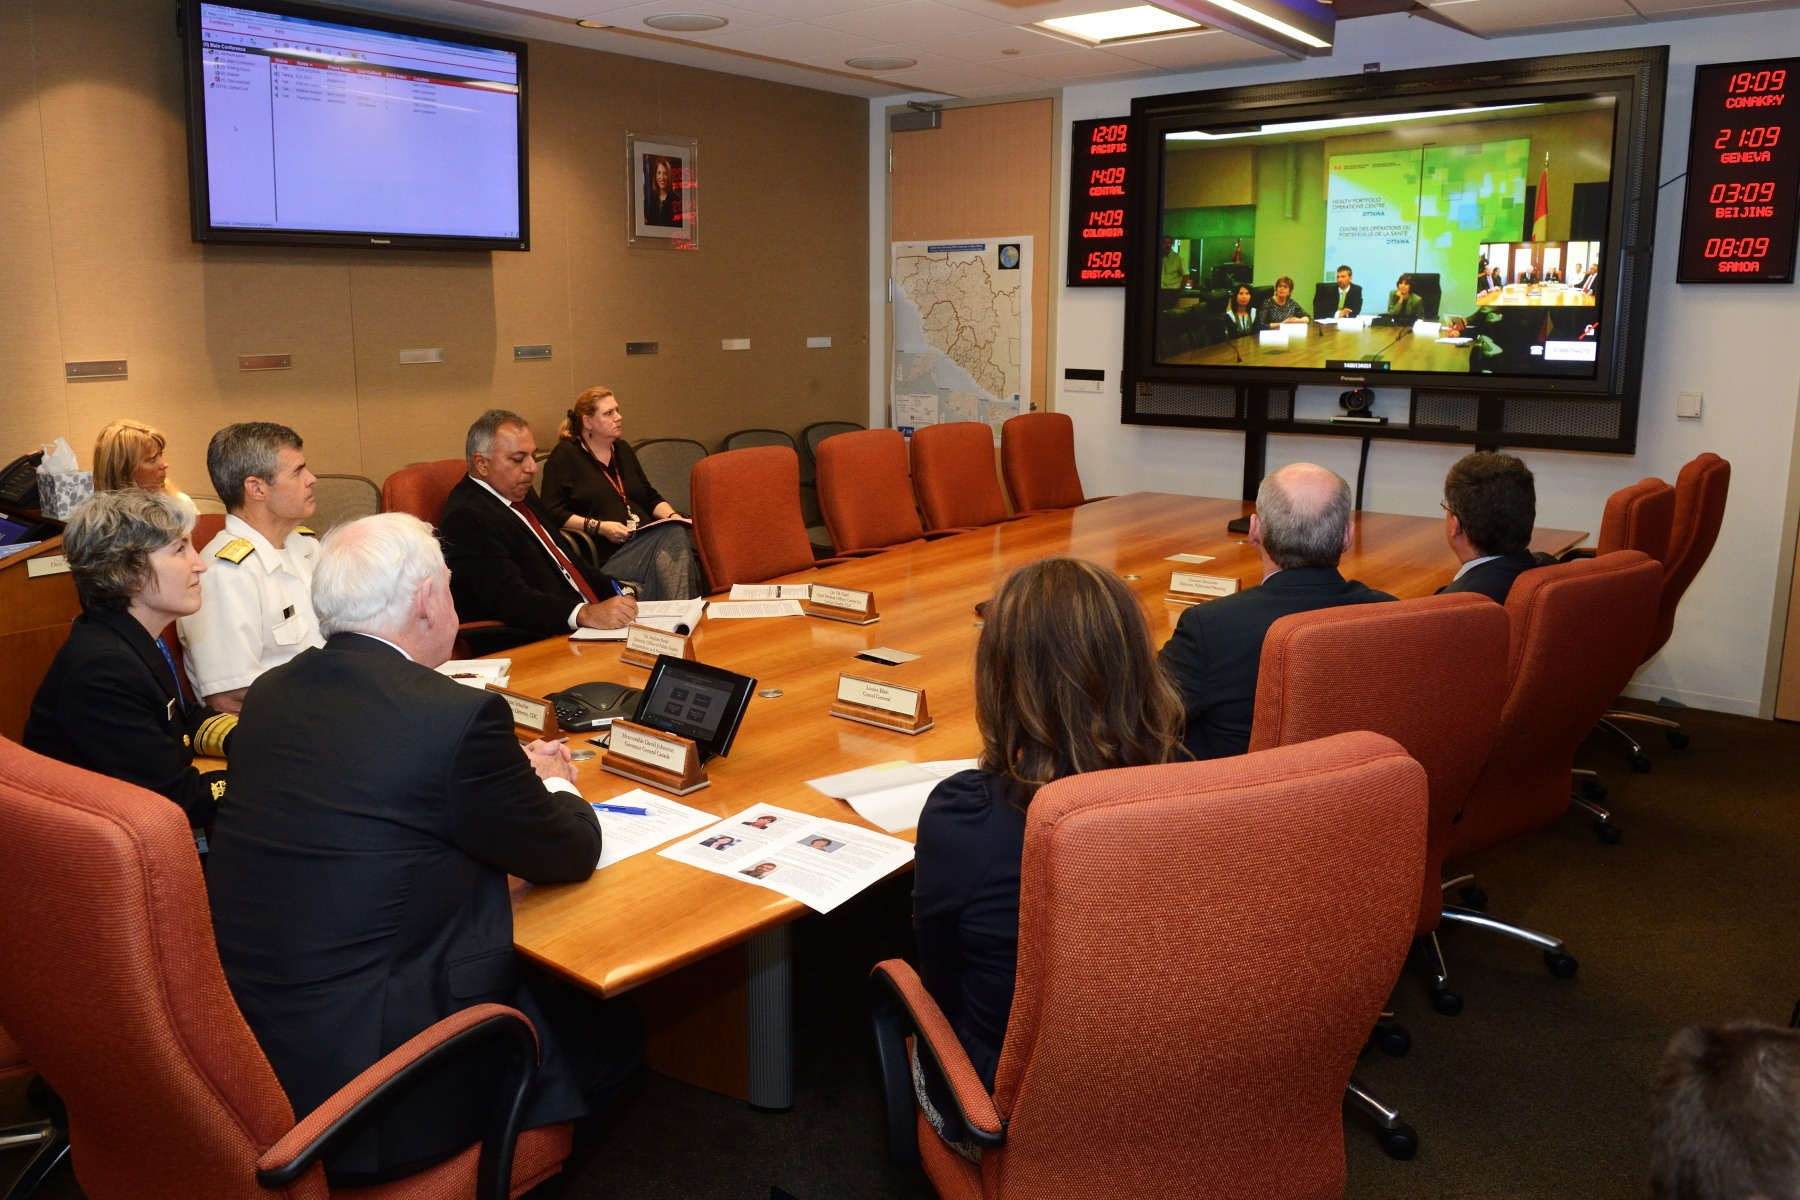 The Governor General participated in a video conference between CDC officials and Public Health Agency of Canada (PHAC) officials to discuss innovative ways to communicate information on disease crisis and prevention to the world.